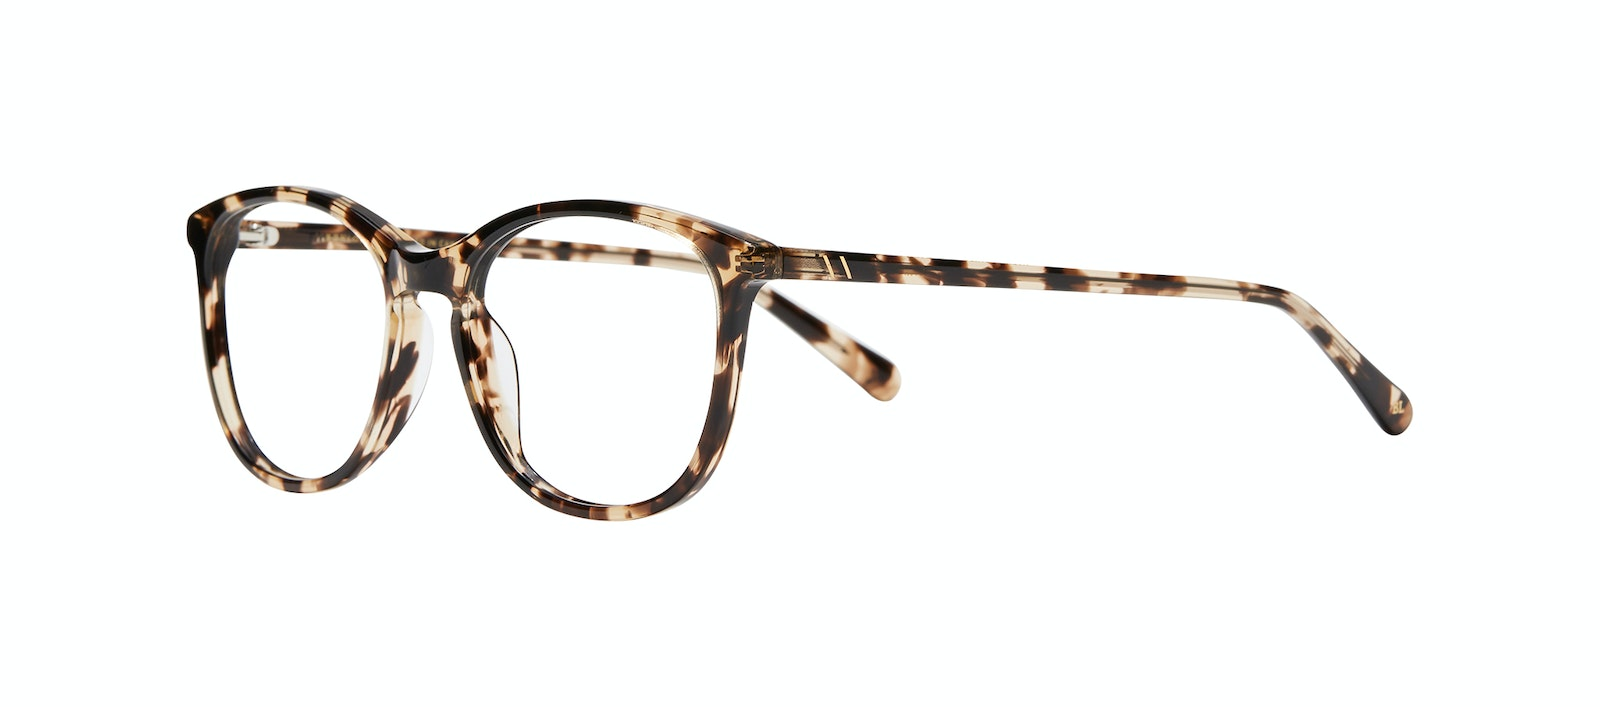 Affordable Fashion Glasses Rectangle Square Round Eyeglasses Women Nadine M Snake Skin Tilt